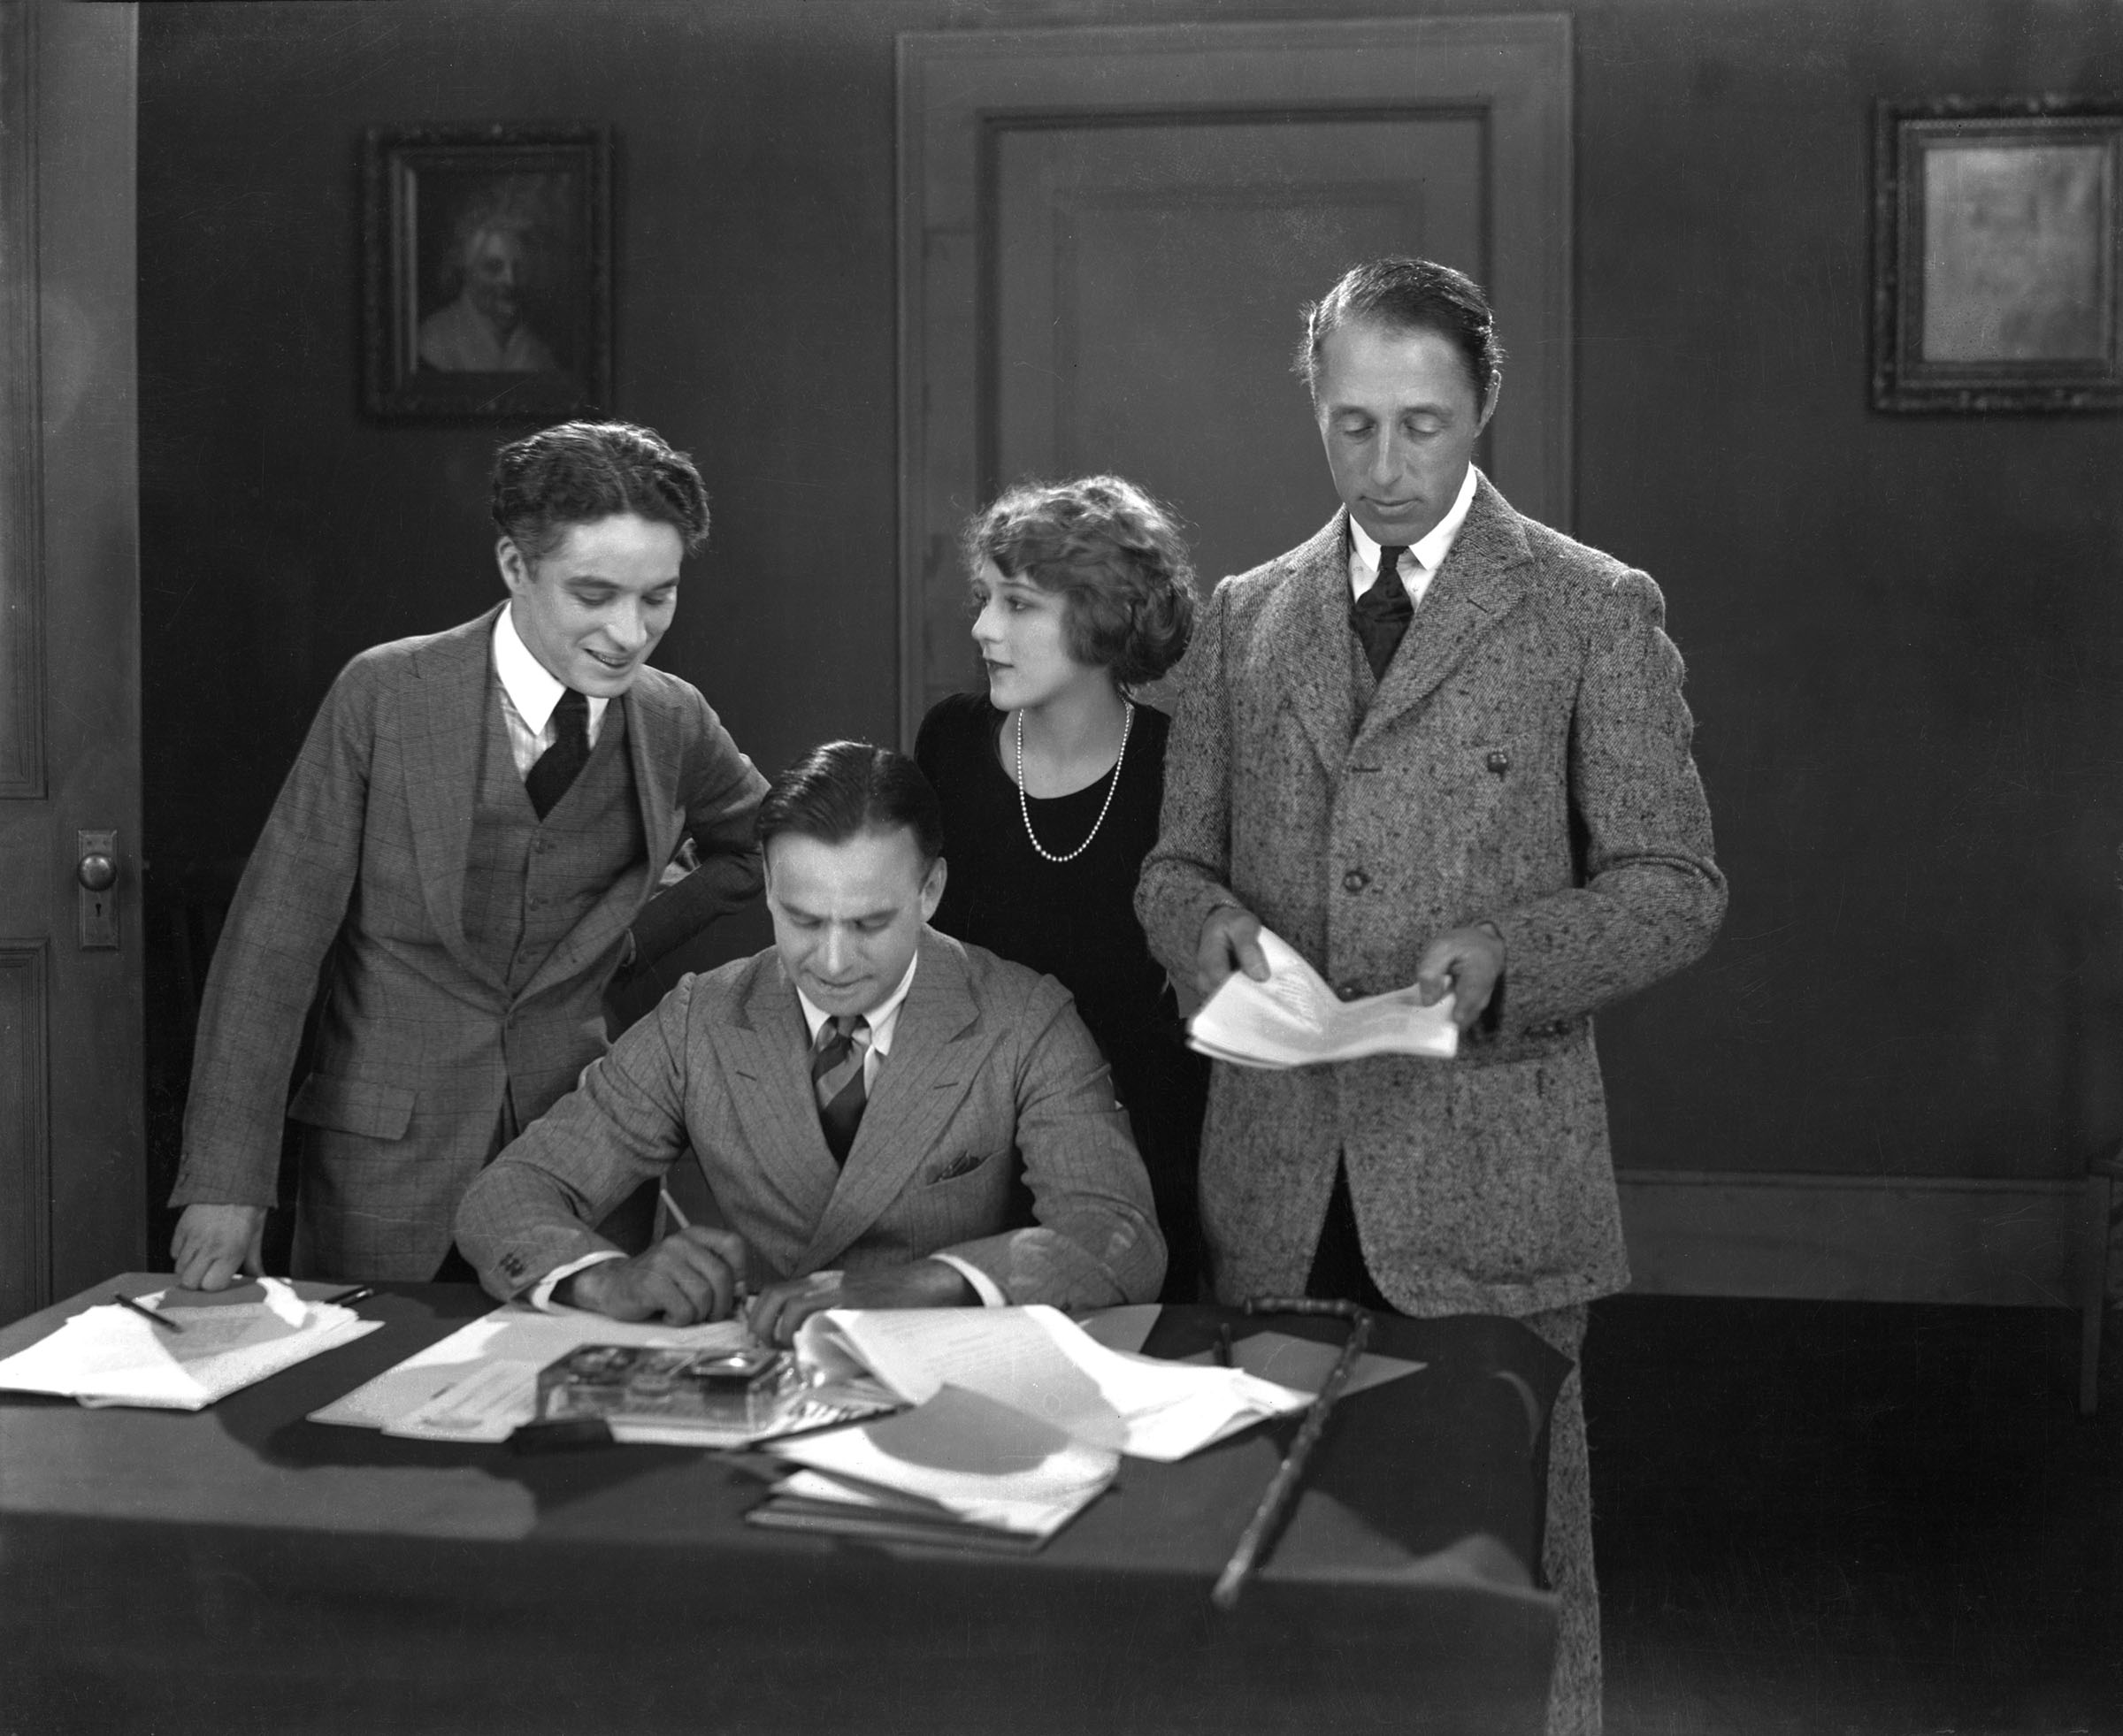 Douglas Fairbanks, Charles Chaplin, Mary Pickford and D.W. Griffith